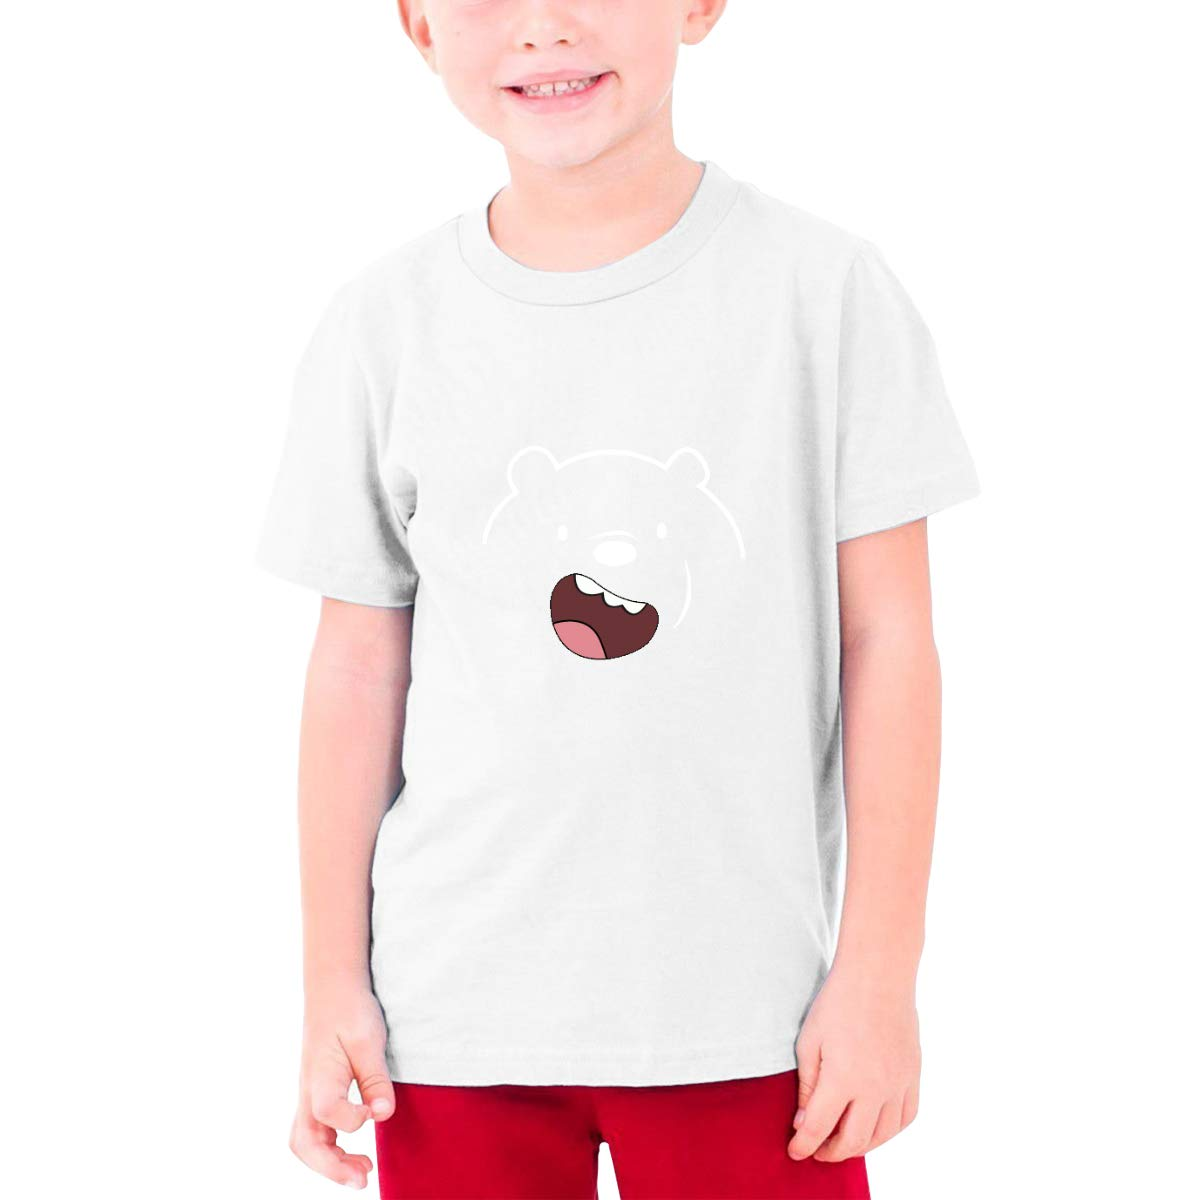 Runxin Design We Bare Bears Funny Tshirts Short Sleeve for Minor Black